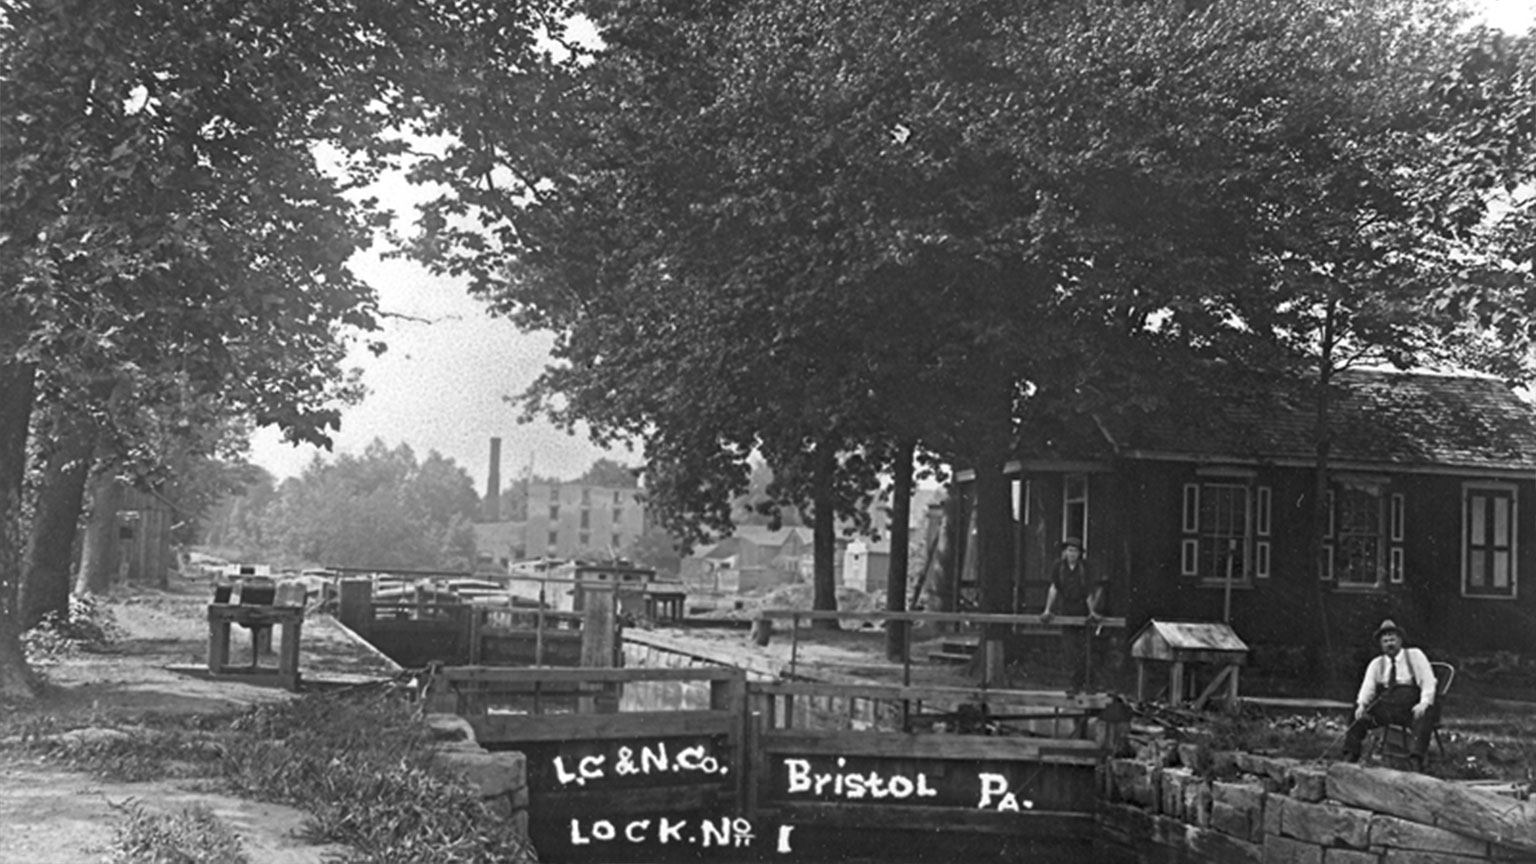 The toll collector's job was to collect toll money from anyone using the canal that was not using a LCNC boat.  He was able to tell that because only the LCNC boats had the white circles on the front.